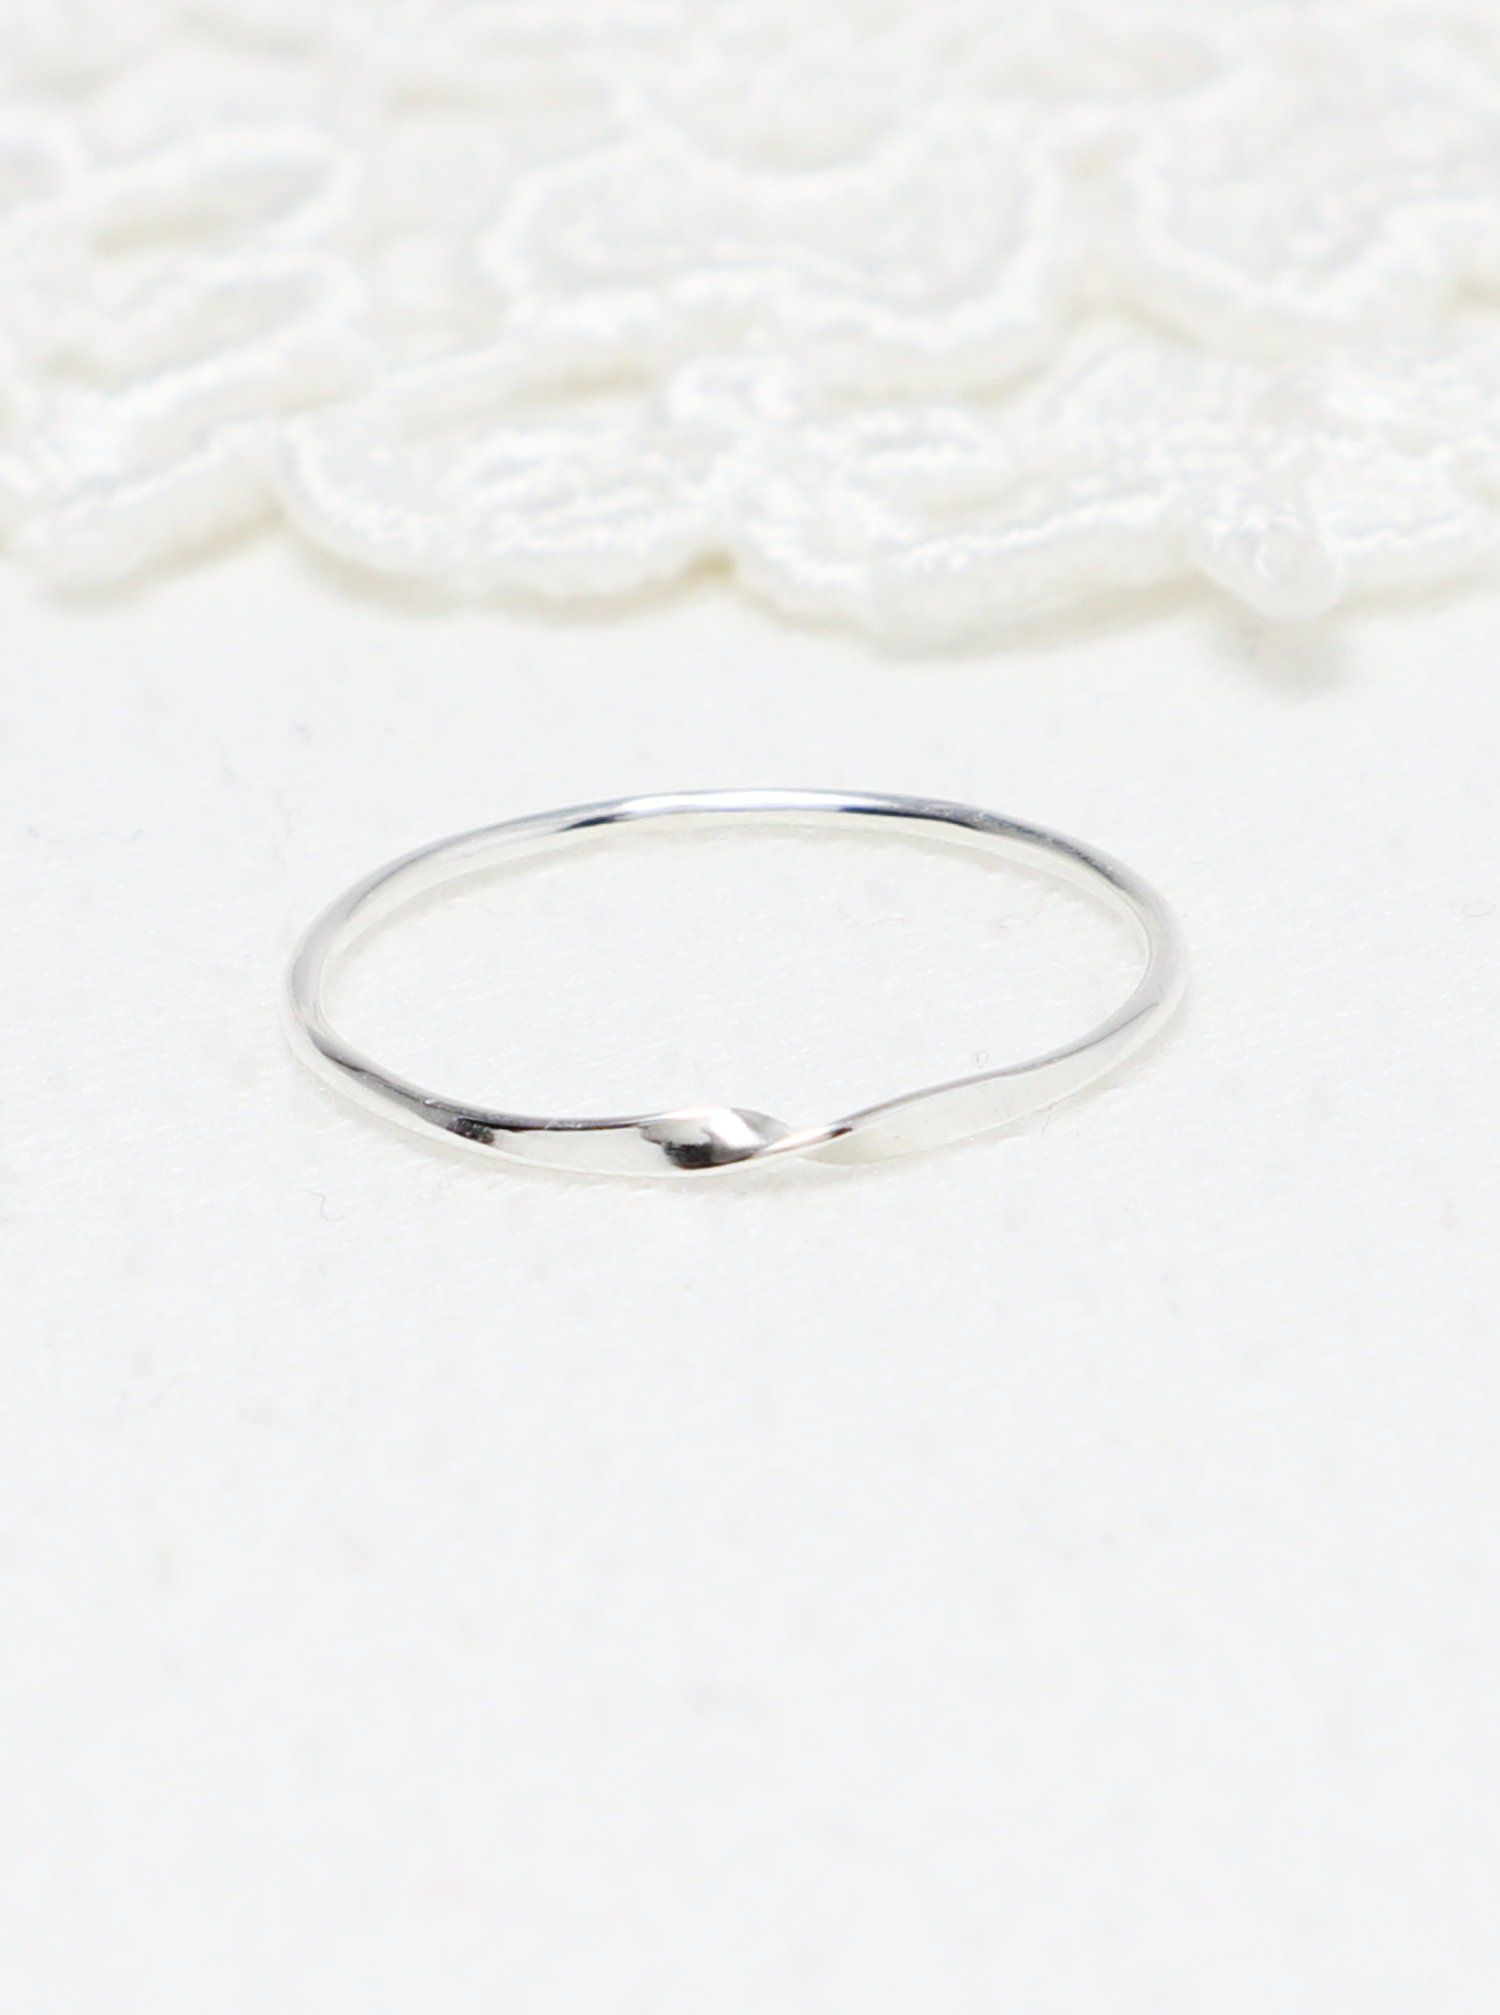 Dainty Rings Silver Simple Super Thin Mobius Ring Design Delicate Rings Mobius Ring Promise Rings